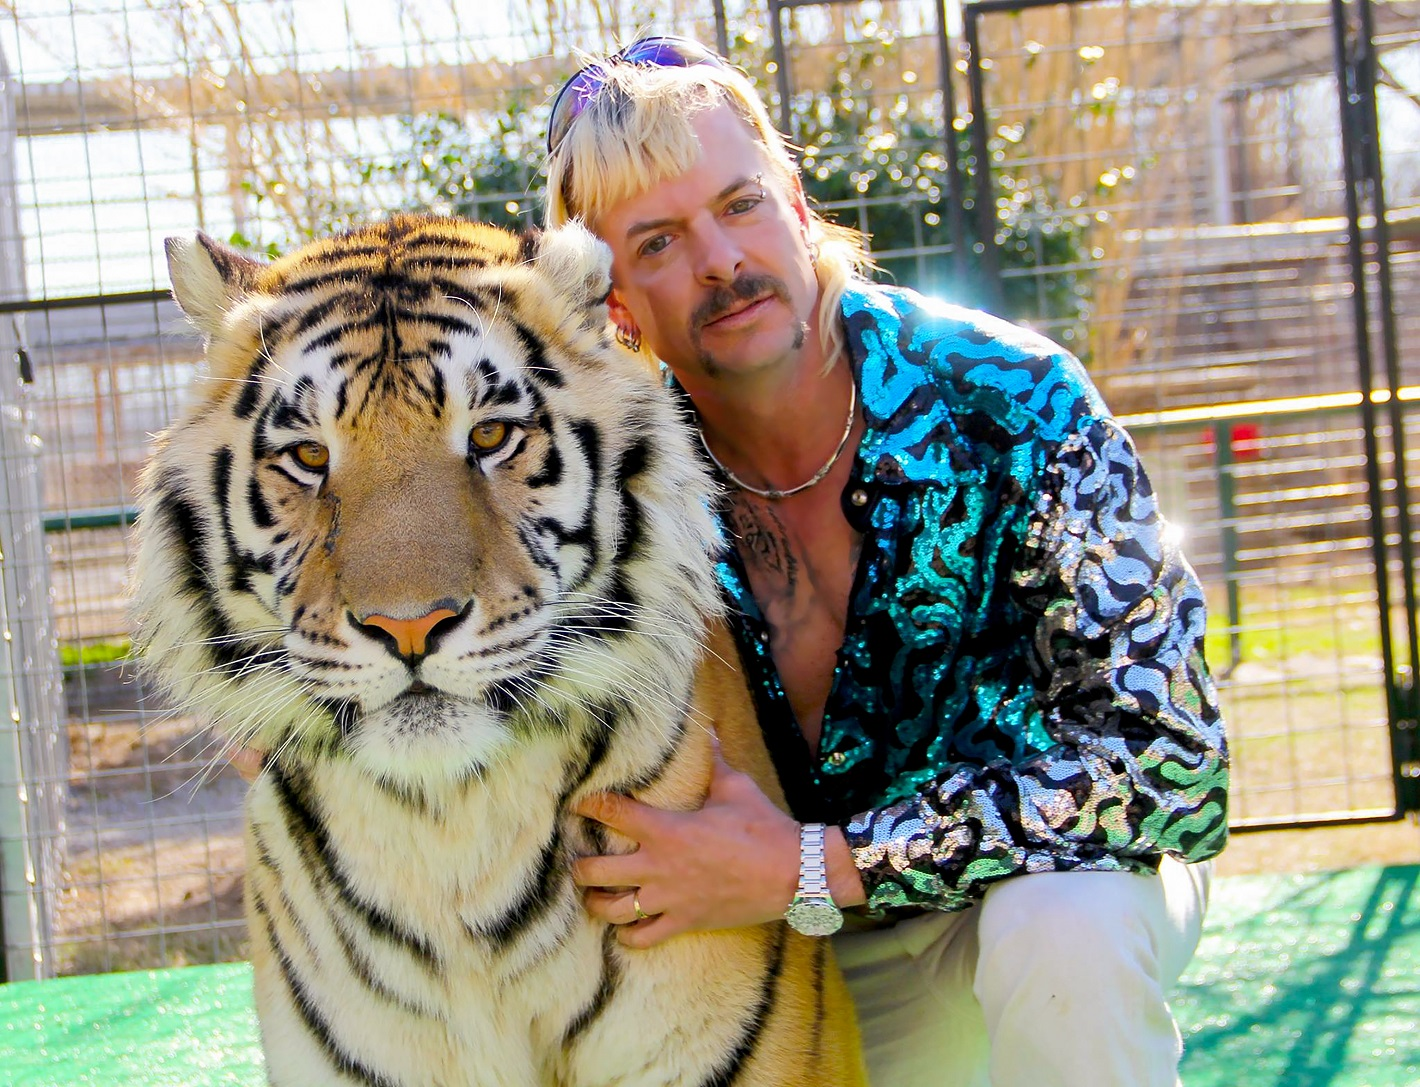 Carole Baskin Claims There Are Unsavory Lies About Her Husband S Disappearance In Tiger King